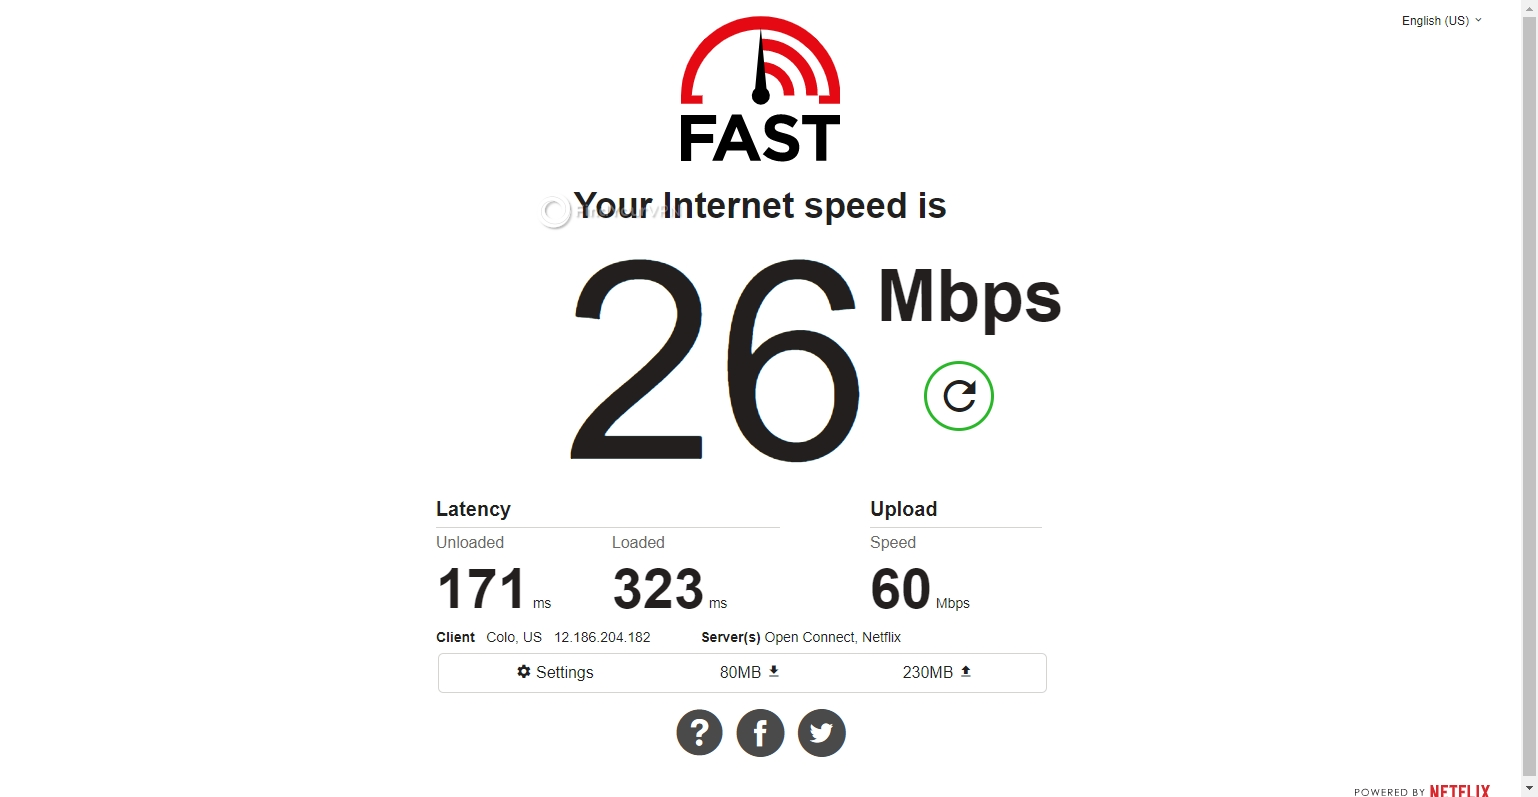 The USA speed results for SaferVPN